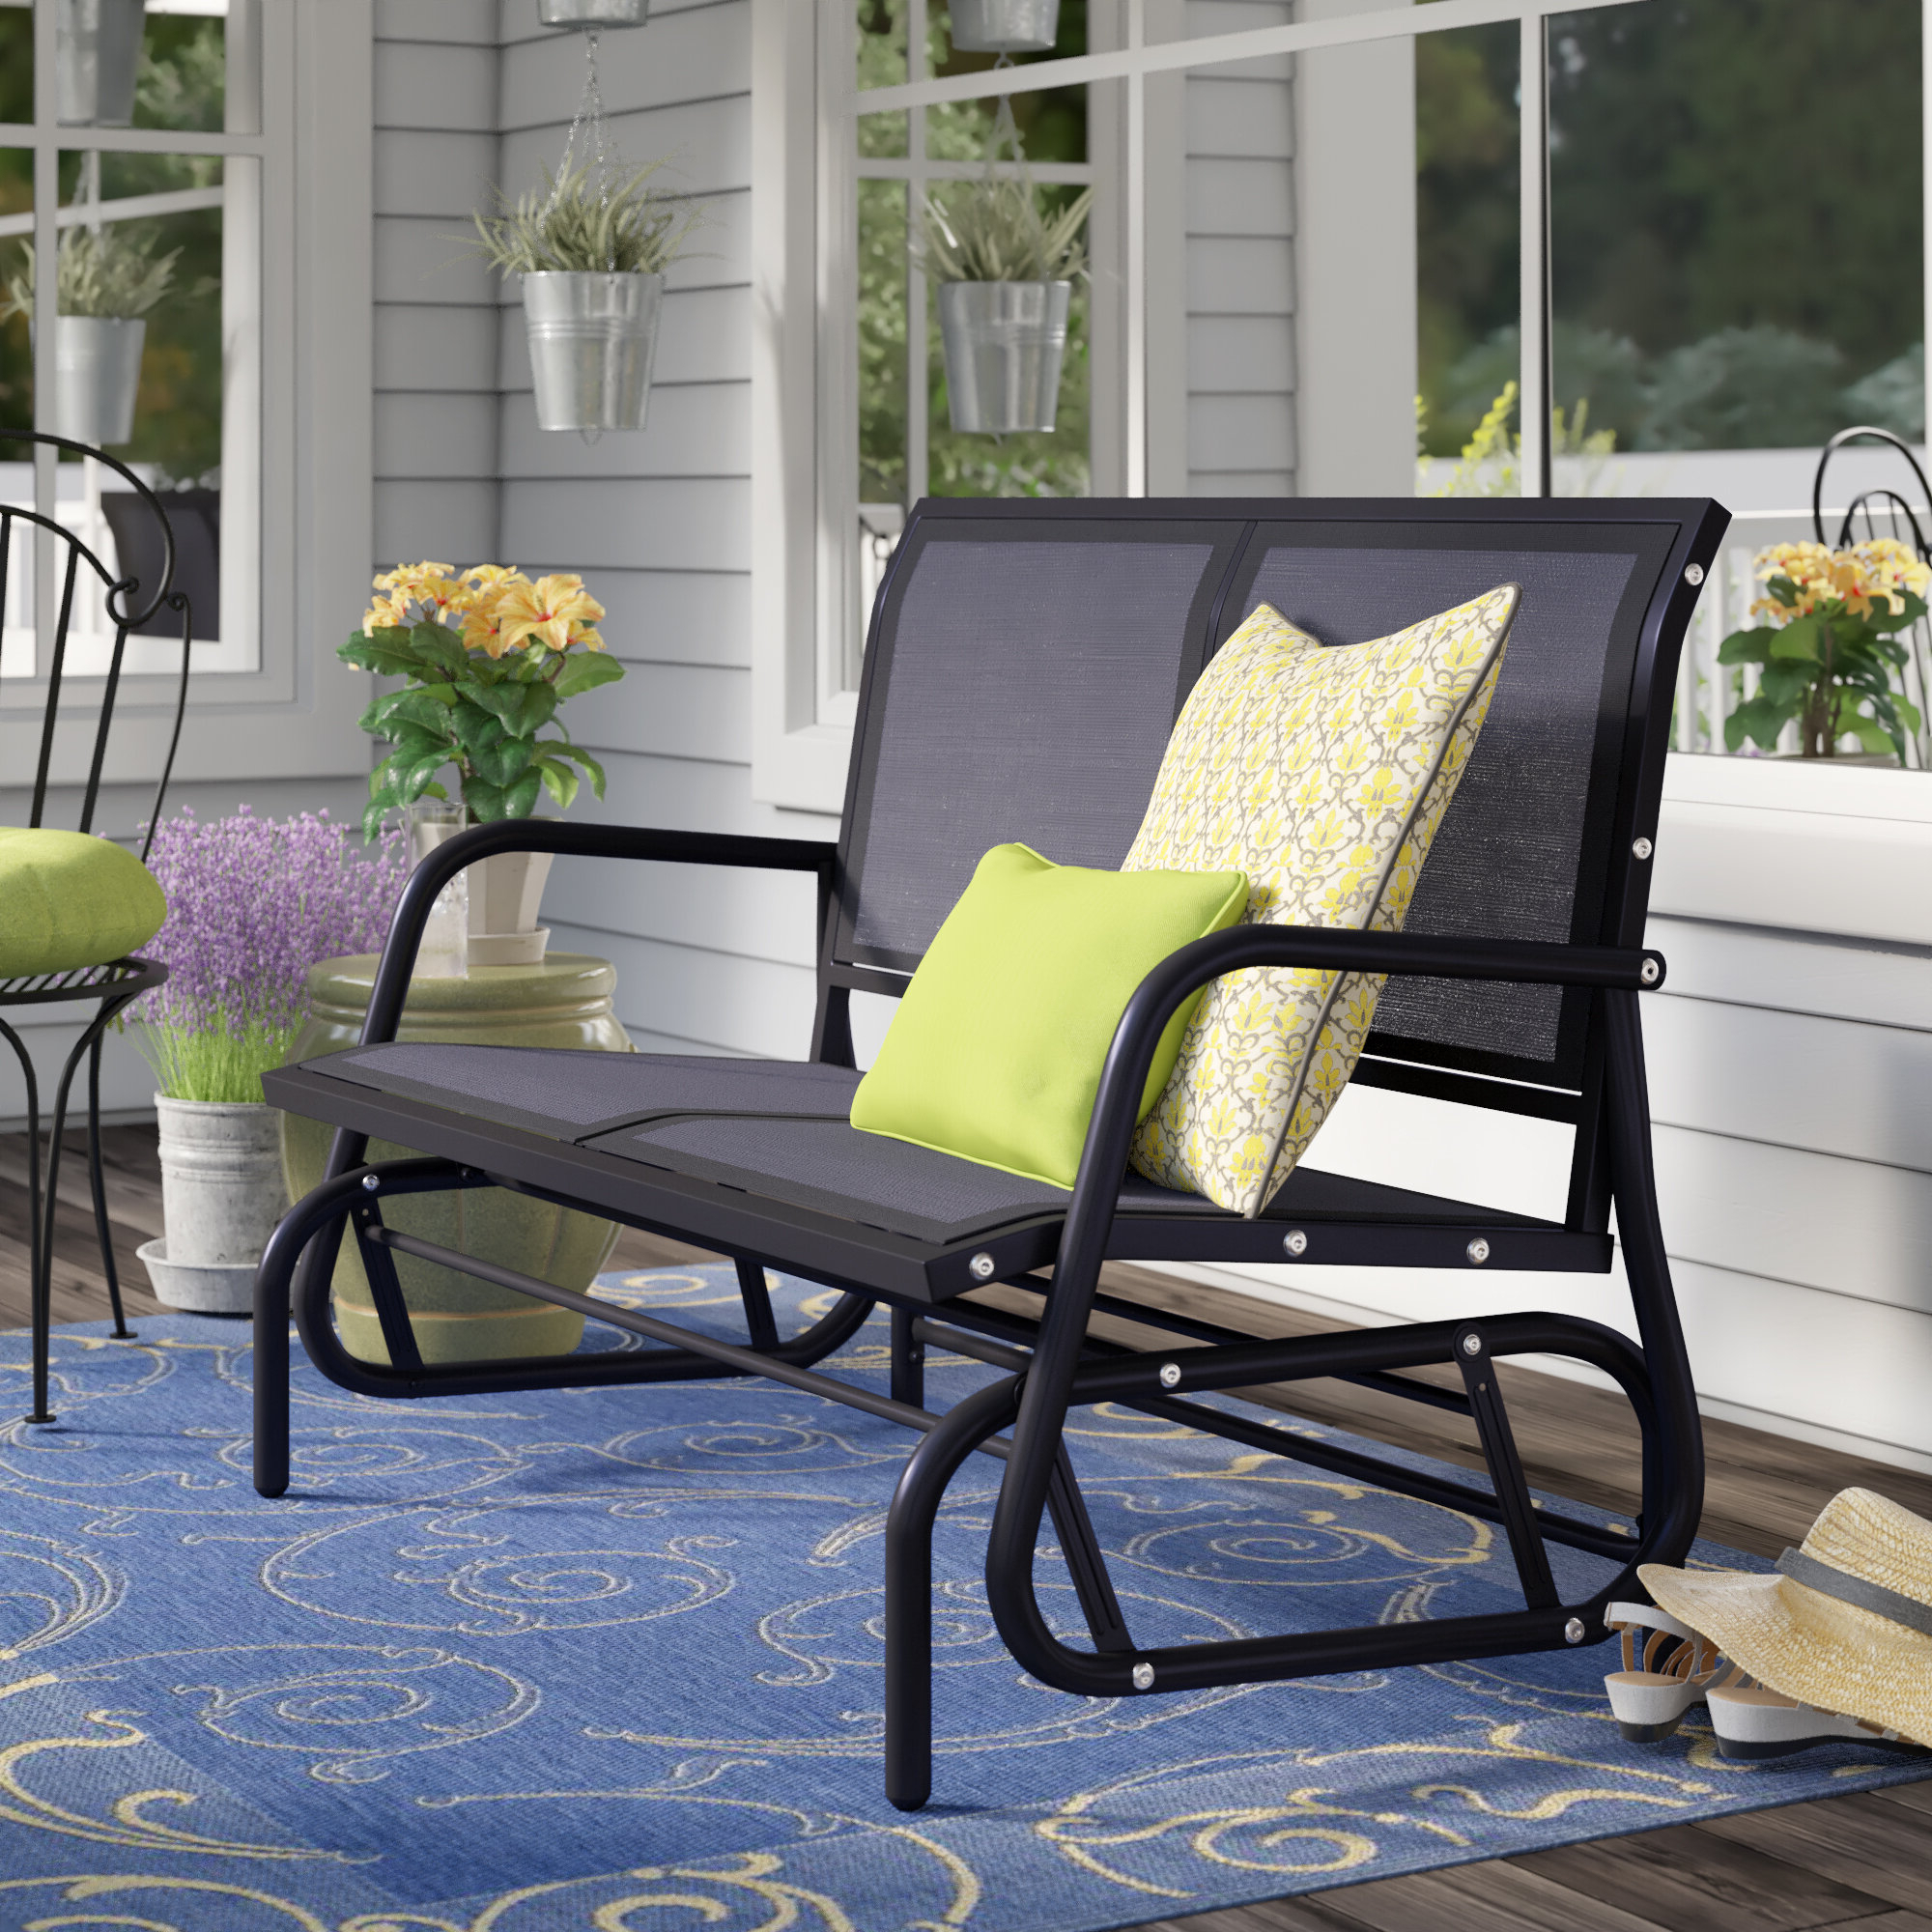 Center Table Double Glider Benches Throughout Well Known Patio Glider With Table (View 22 of 30)